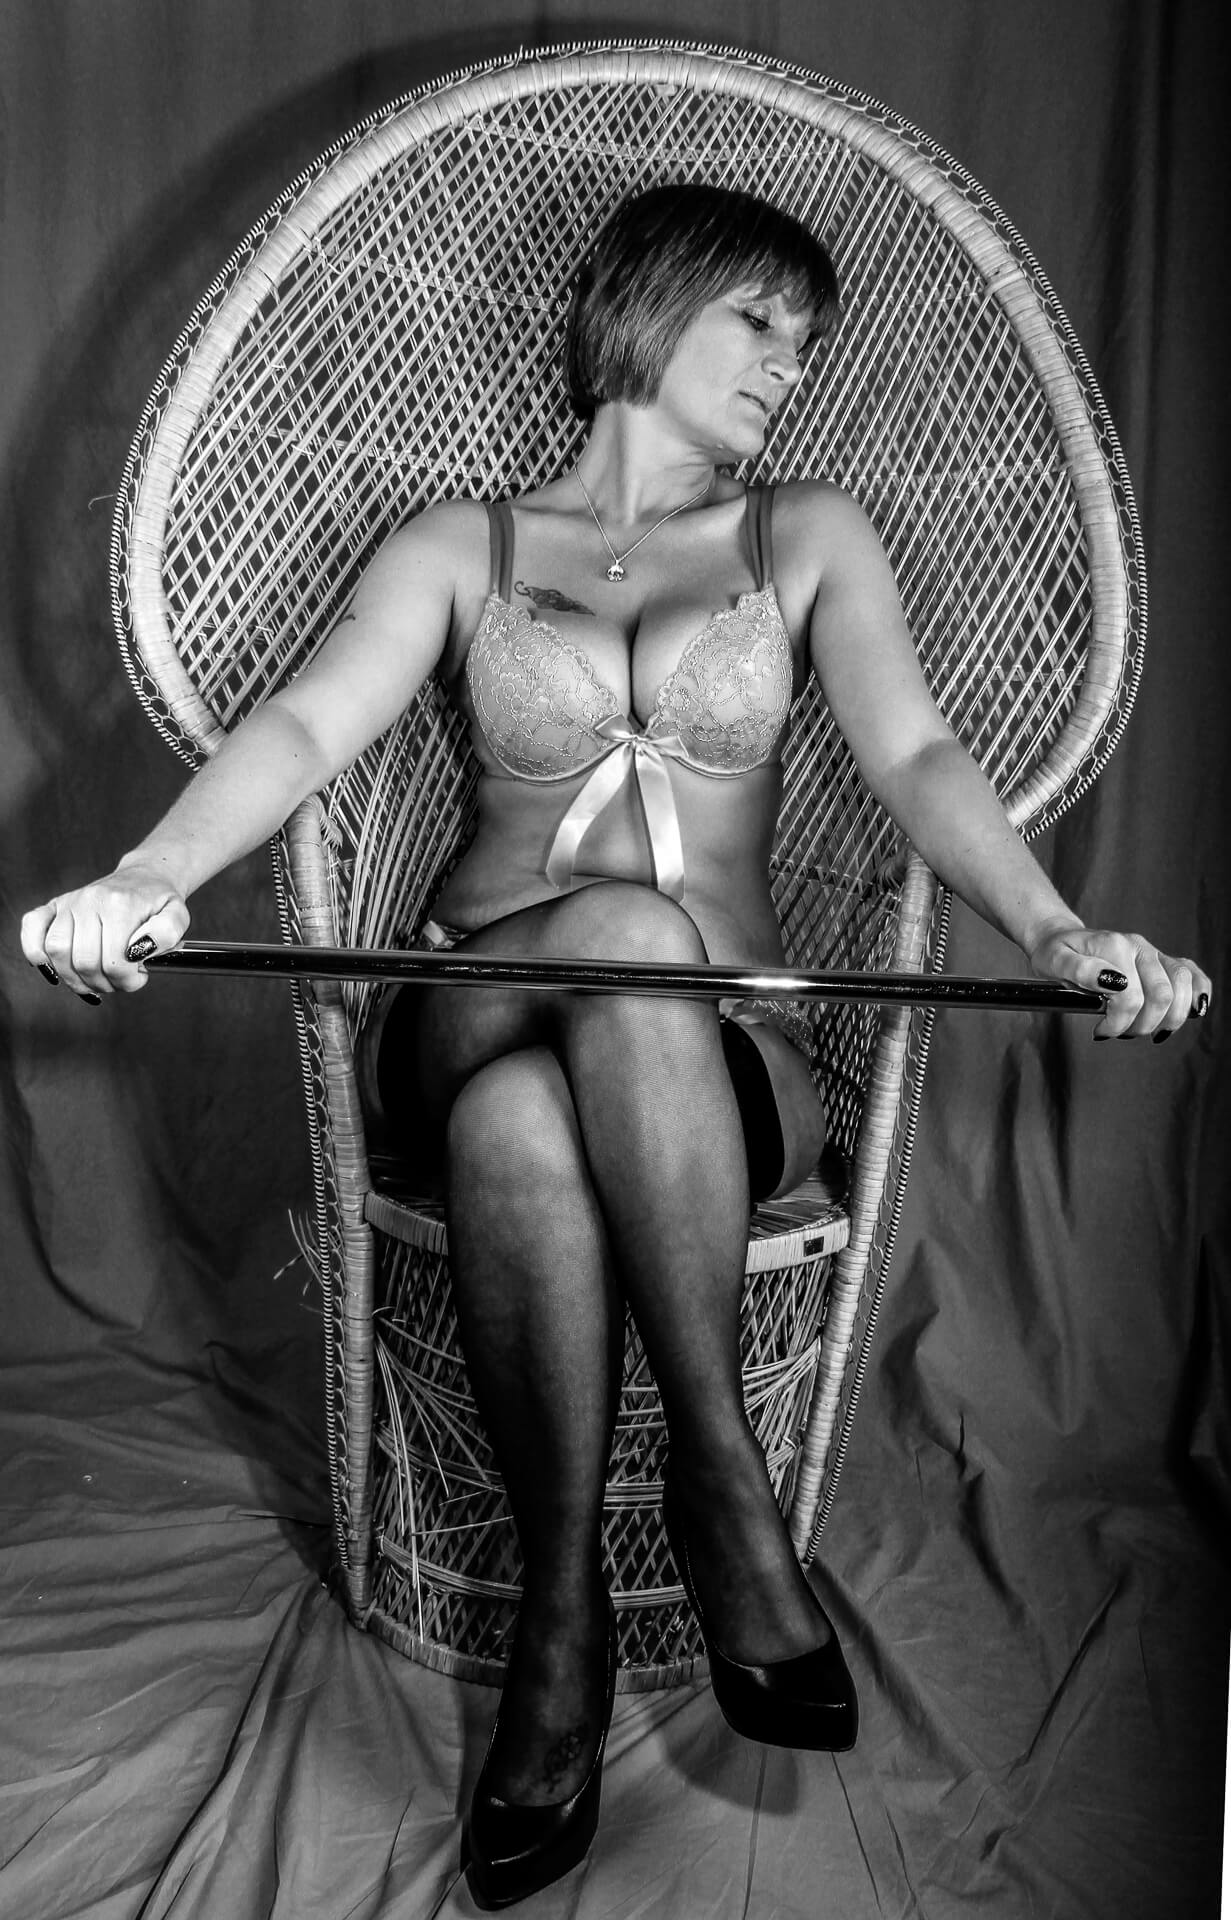 Seen in a full length black & white image whilst sat in a high back bamboo chair is Viv. Viv has her head turned to her left and she is looking slightly down. She has her right leg crossed over her left. Viv wears a lacy bra which enhances her (already fabulous) 'assets', black stockings, and black high heeled shoes. Viv has a cane grasped between her hands which are held out at her knee height.